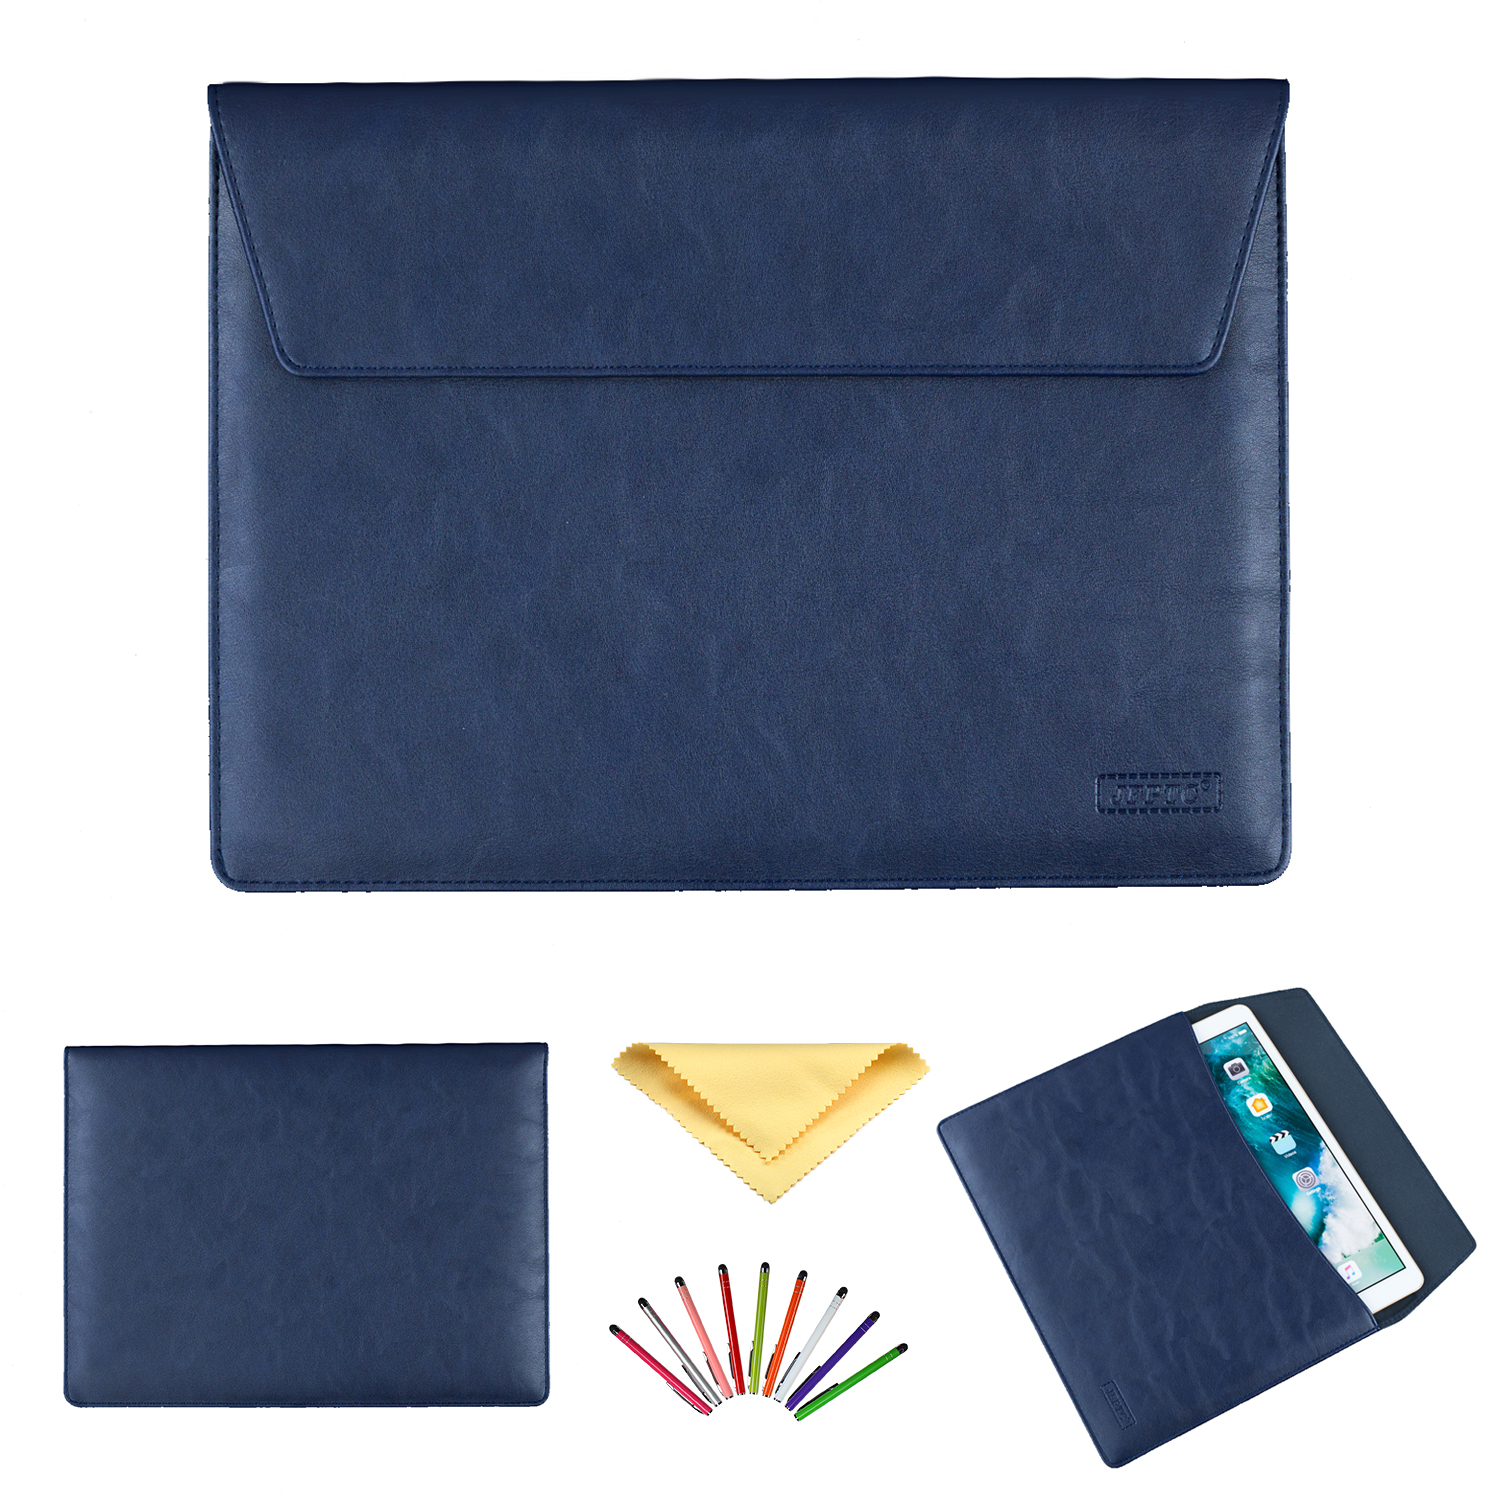 Universal 9.6 inch 9.7 inch 10.1 inch Tablet Sleeve Bag Pouch Case Soft PU Leather Folio Case for iPad 9.7 2018 2017 Amazon Kindle Fire HD 10 Galaxy Tab E 9.6 Tab A 9.7 Tab A 10.1 ETC, Blue